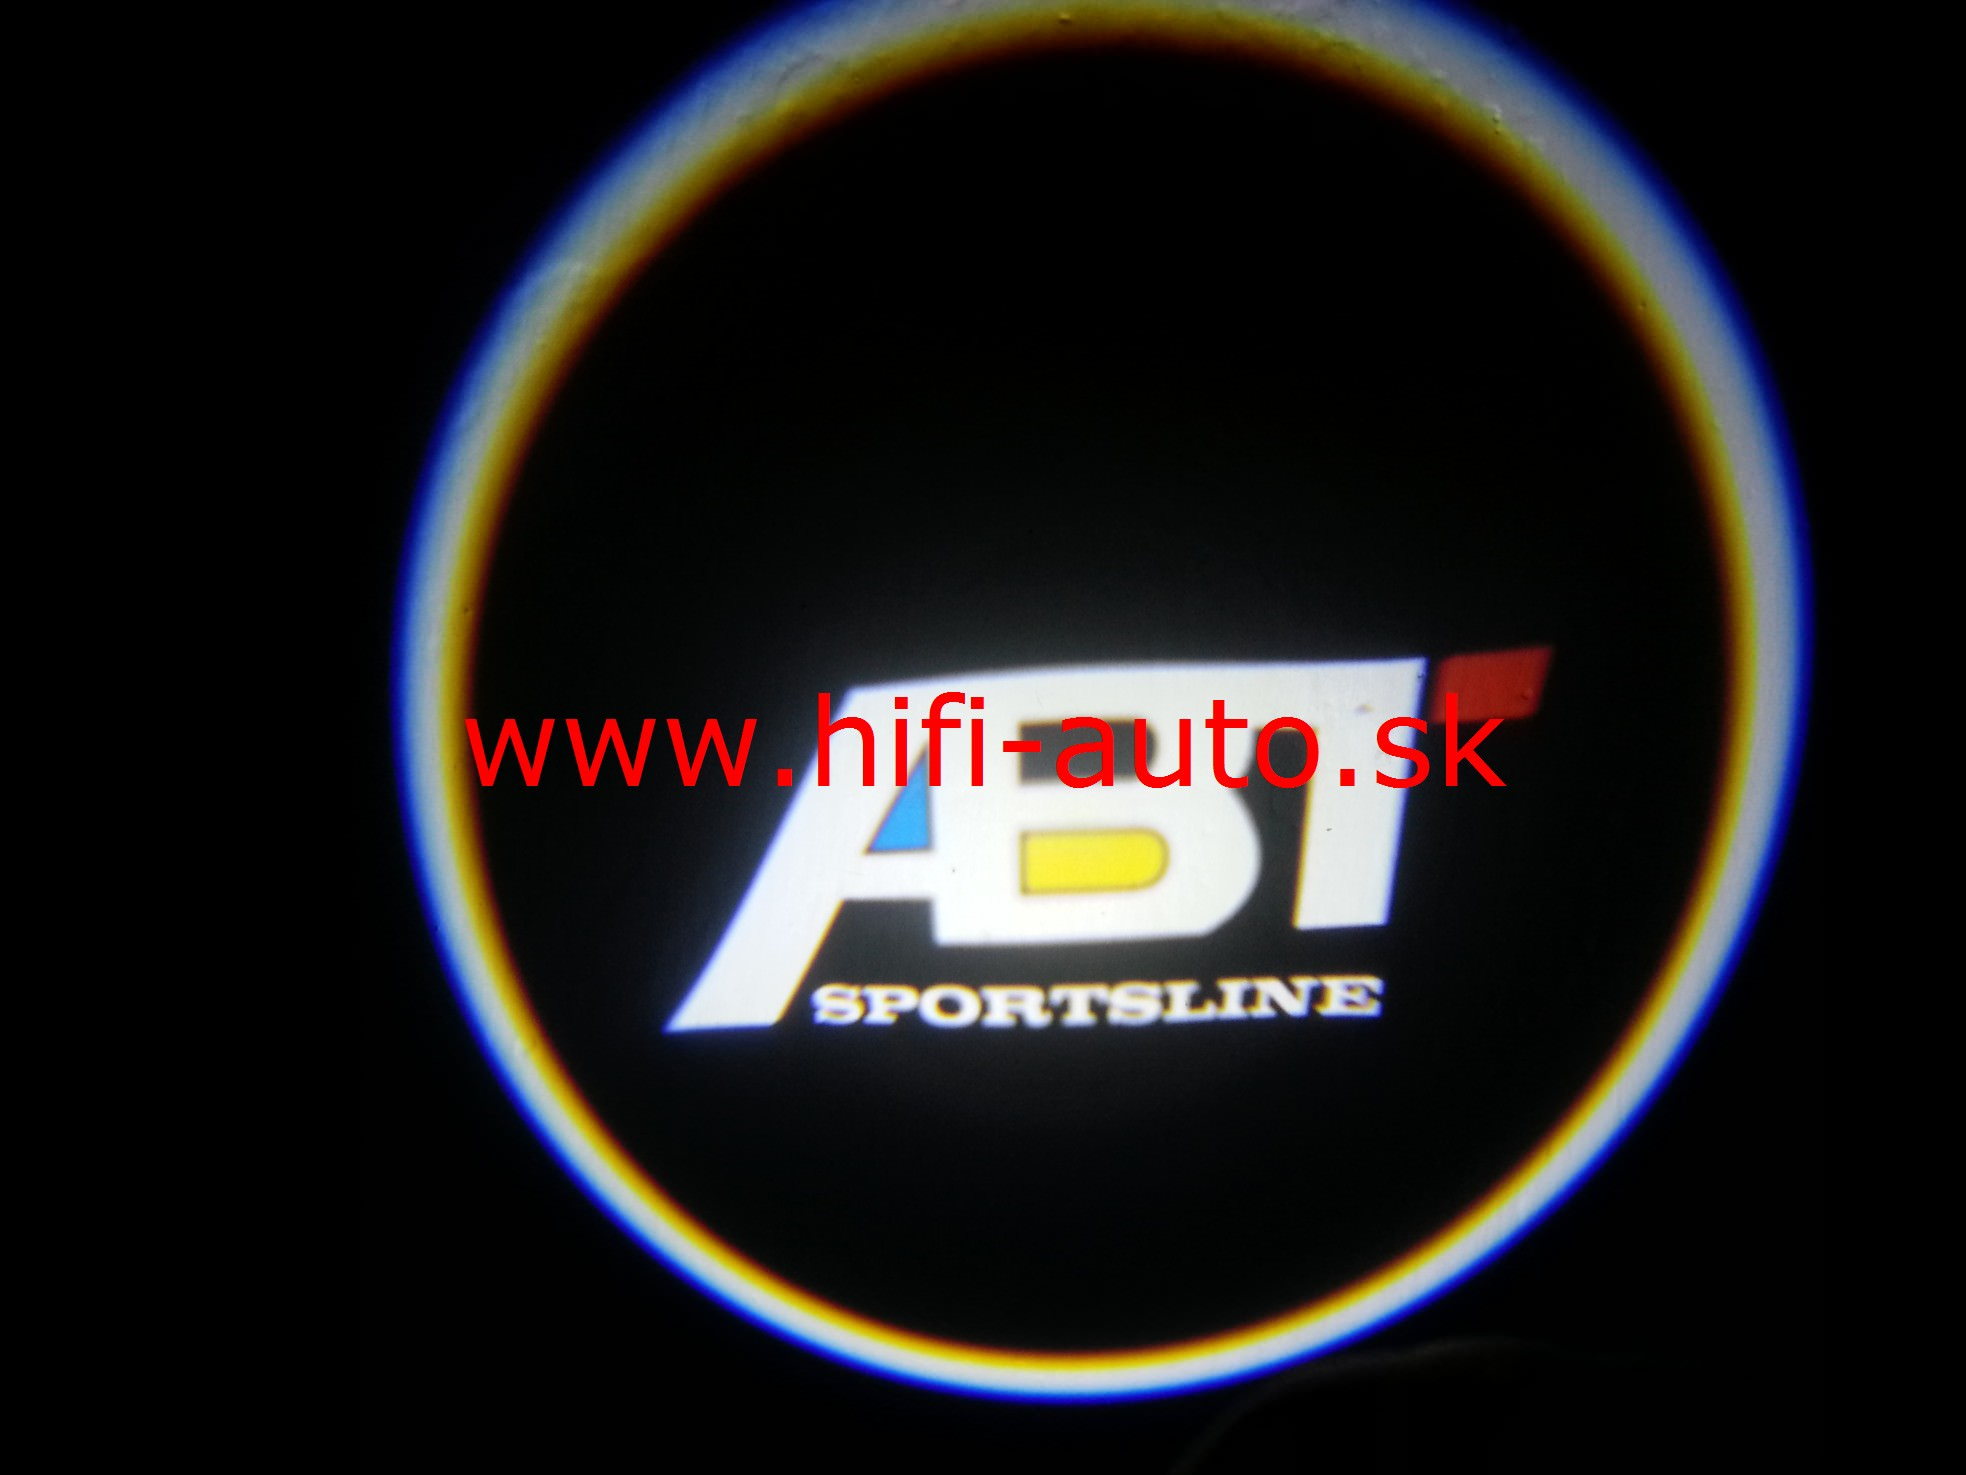 LED logo projektor ABT